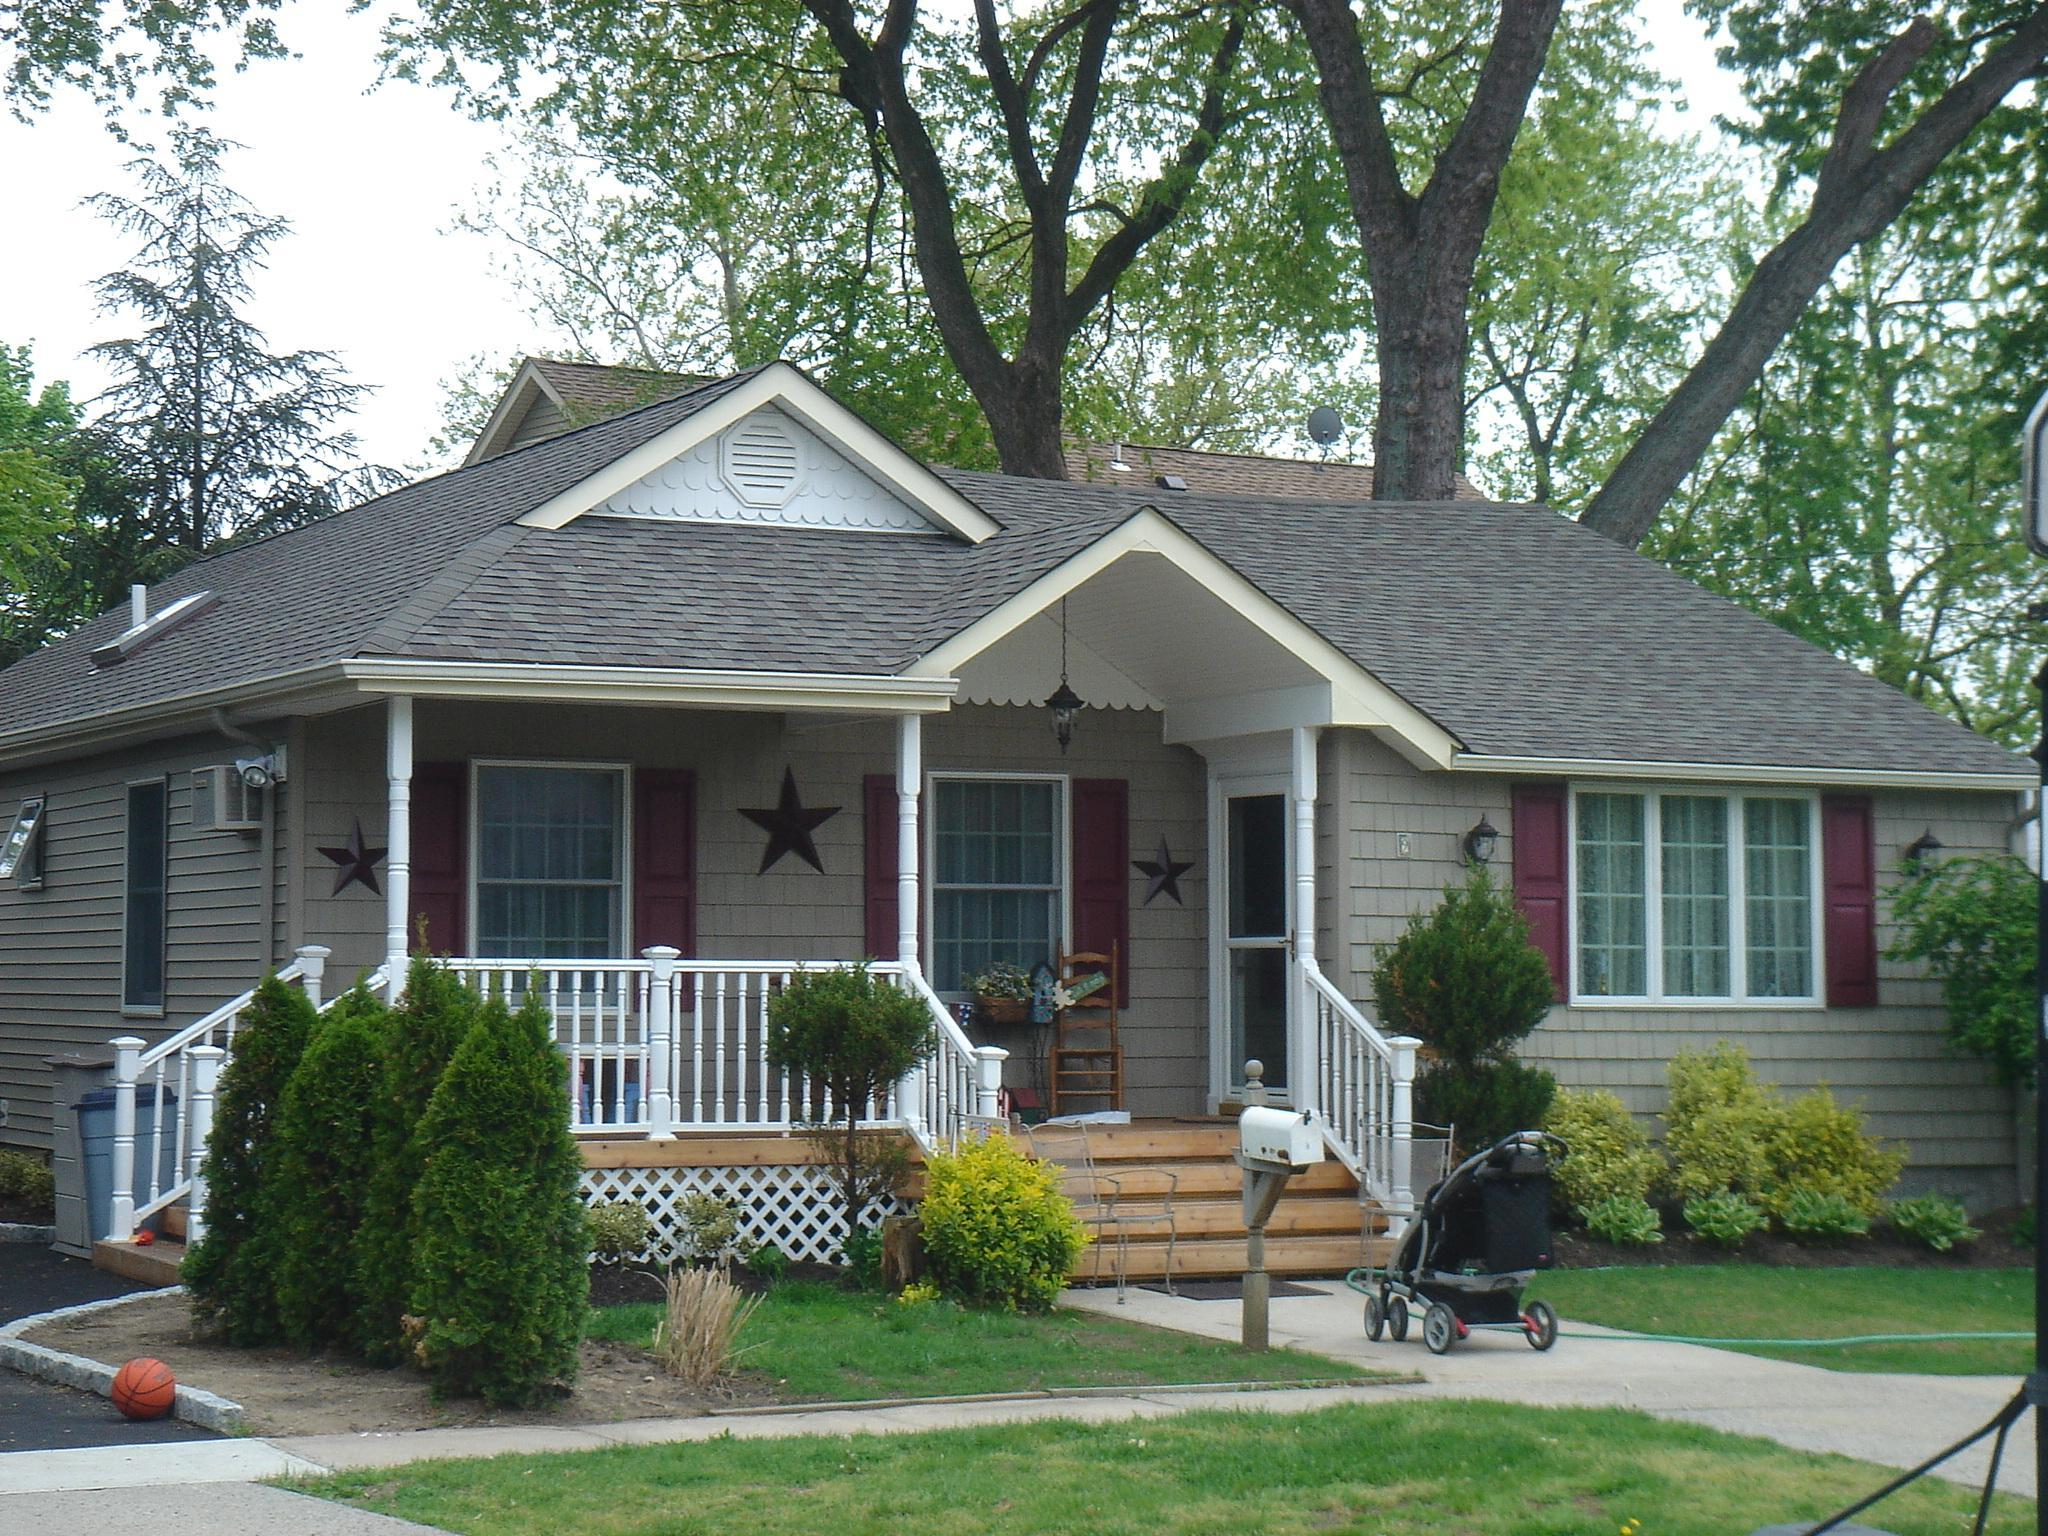 With a new porch and new roof lines and some charm took a small bungalow and gave it welcoming features.